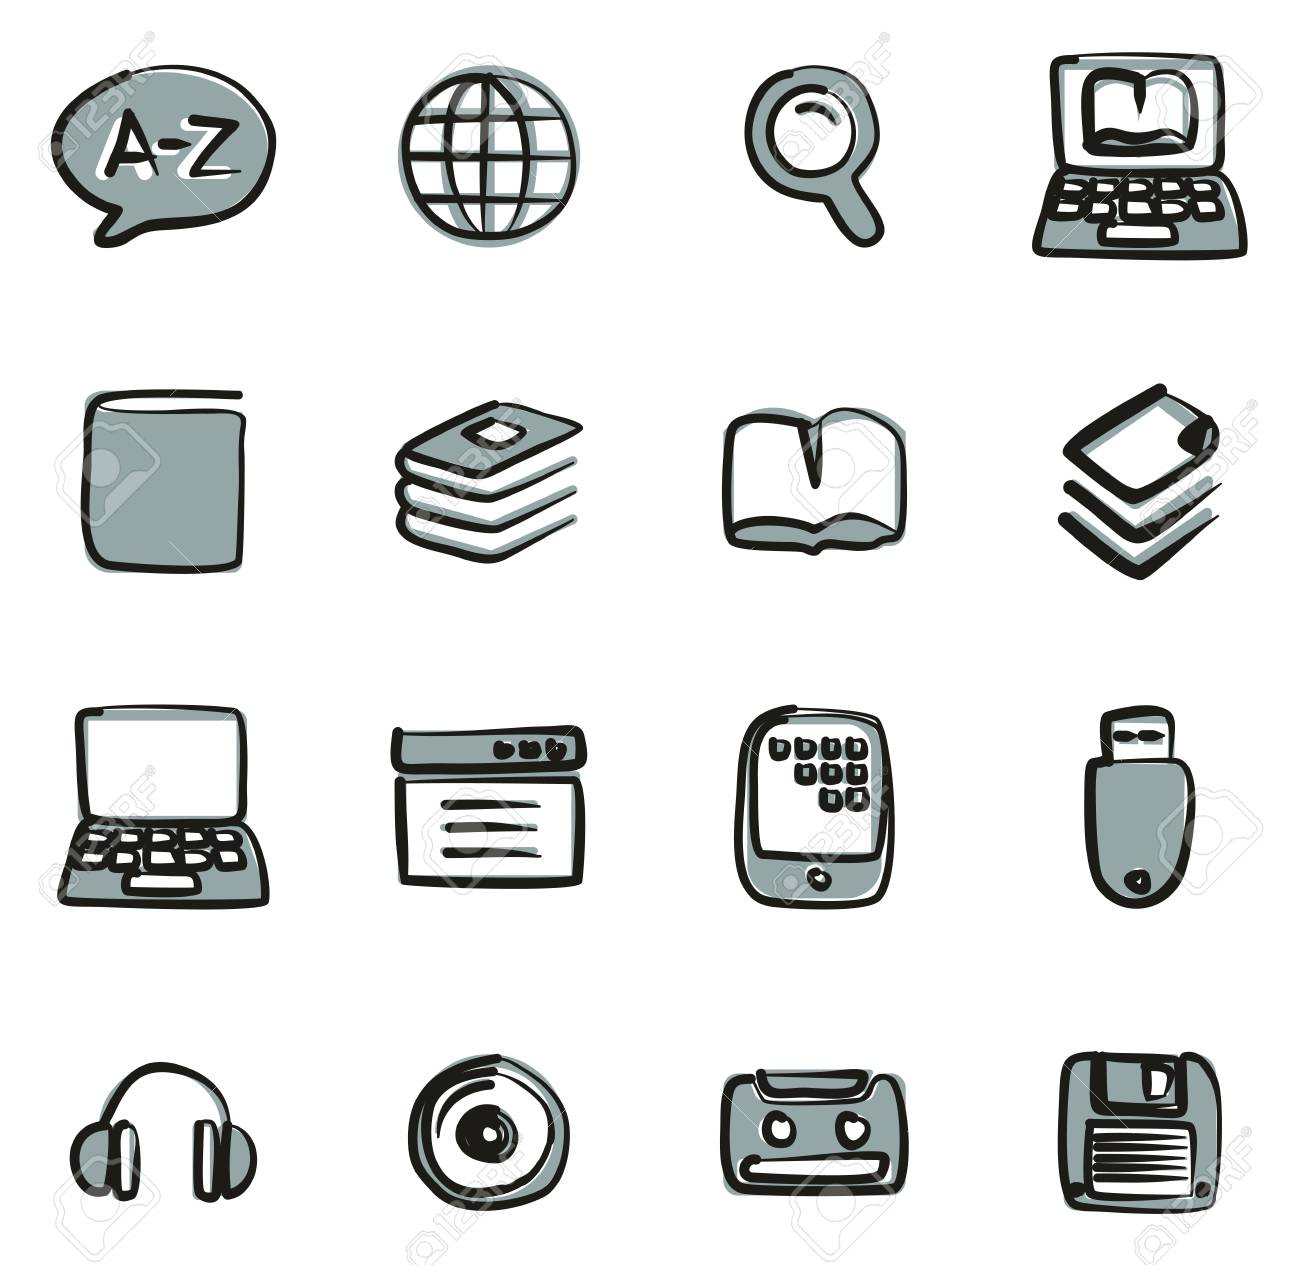 Dictionary or Glossary Icons Freehand 2 Color - 119288188